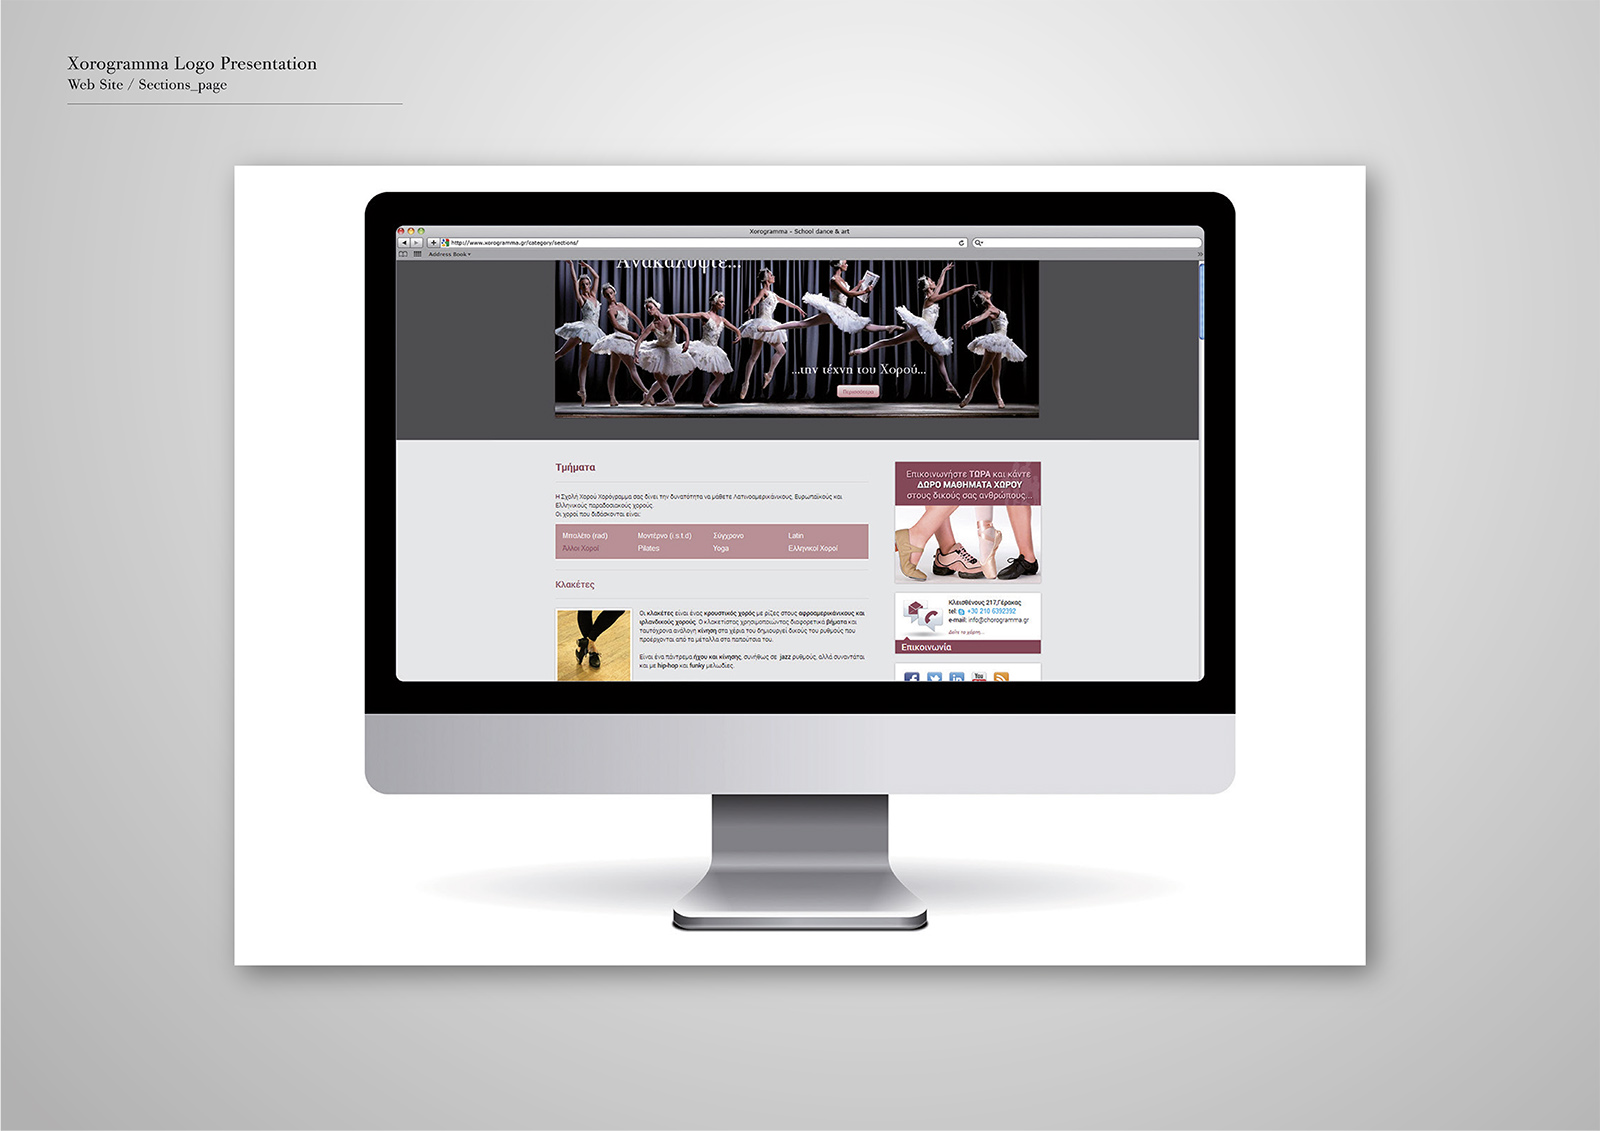 Corporate Identity Xorogramma_website_sections_page_yianart